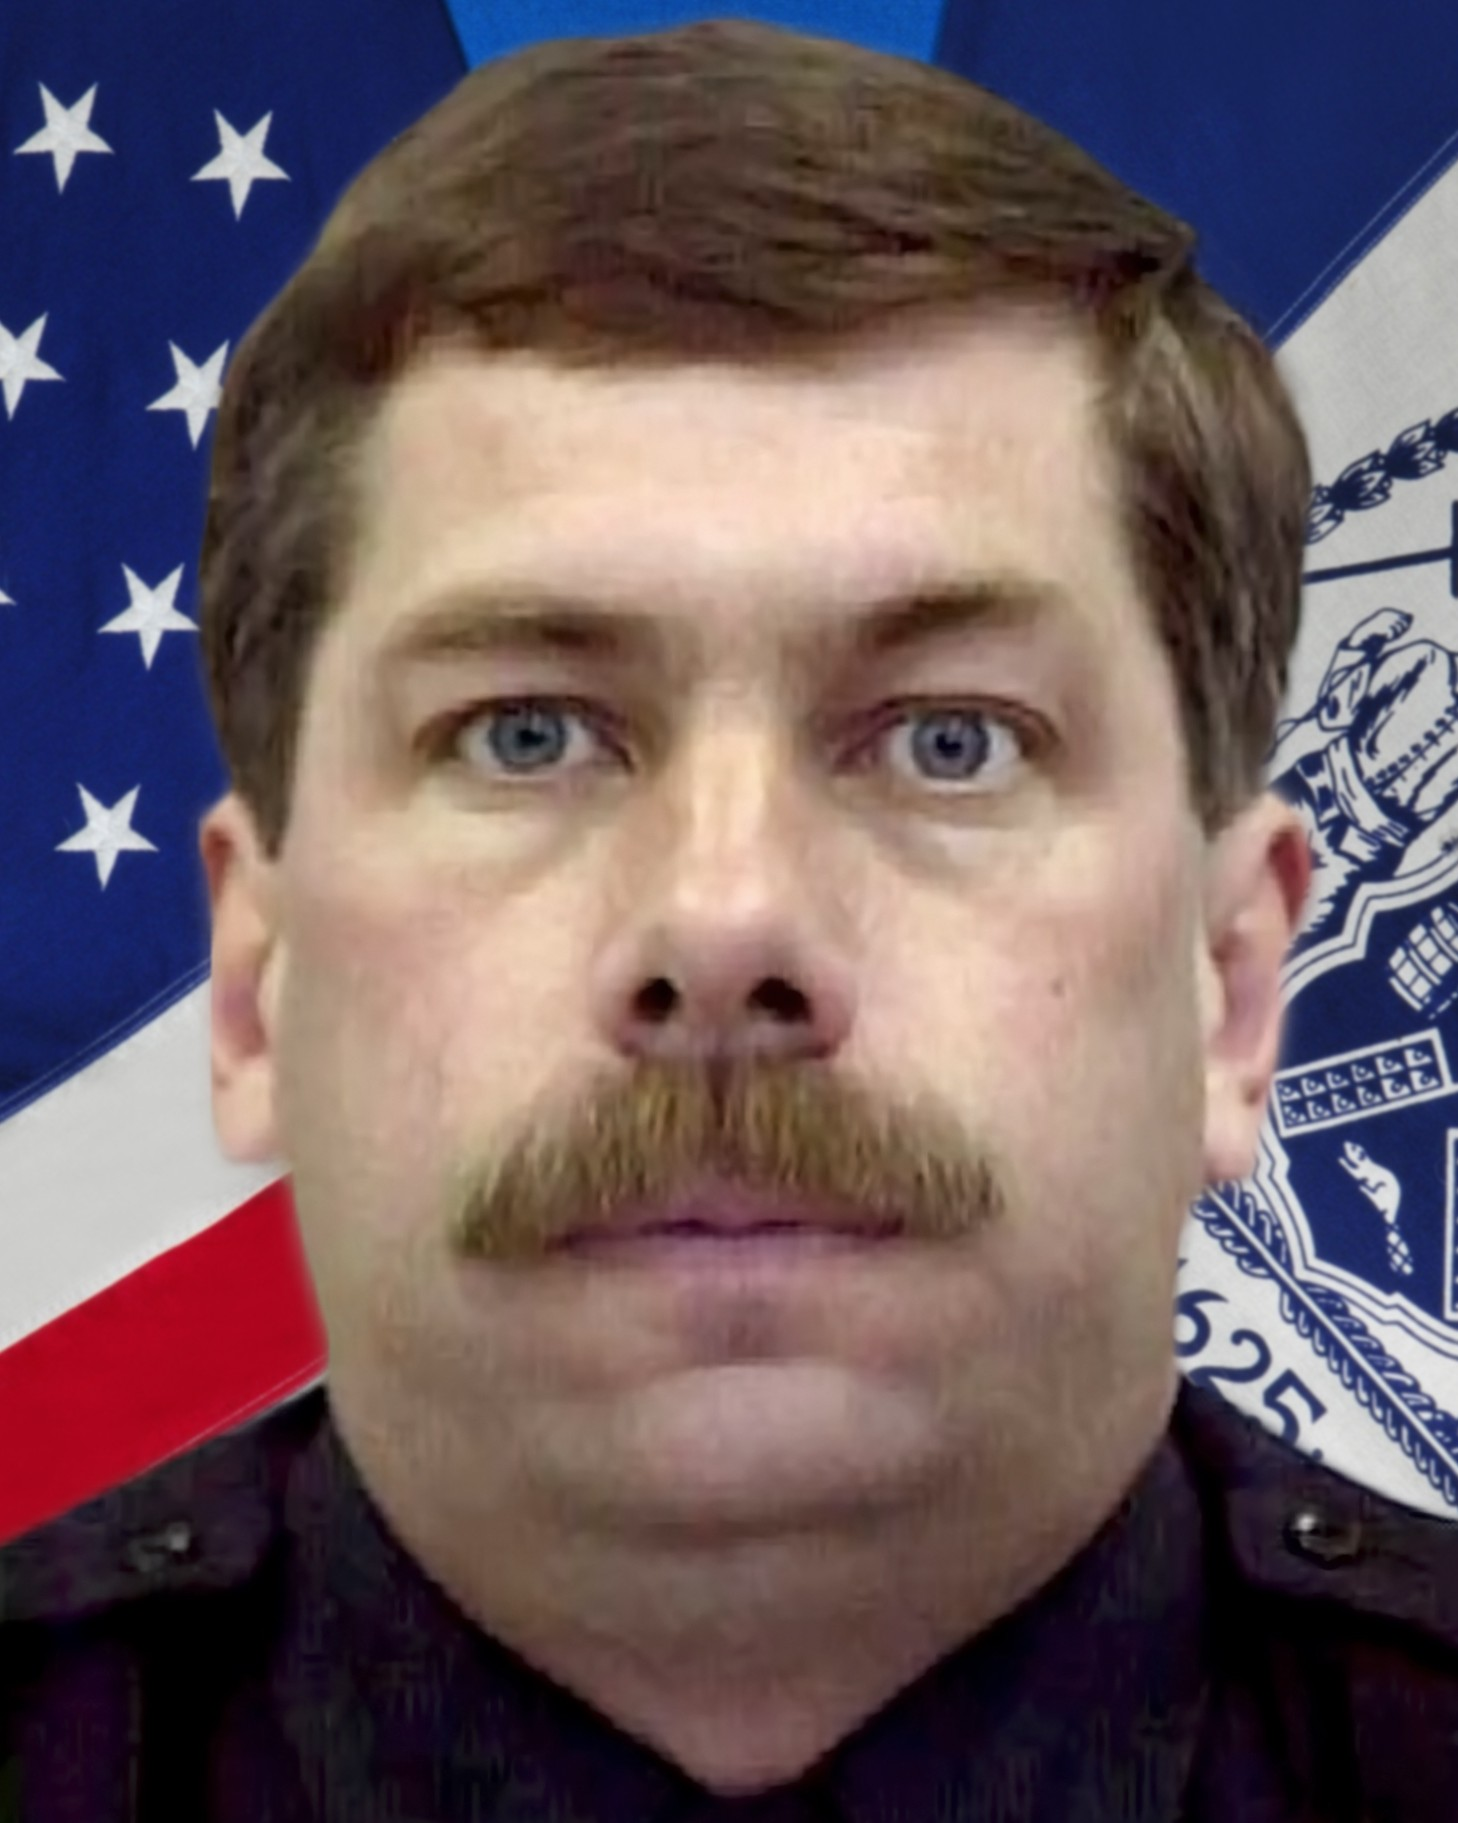 Sergeant Michael J. Galvin | New York City Police Department, New York